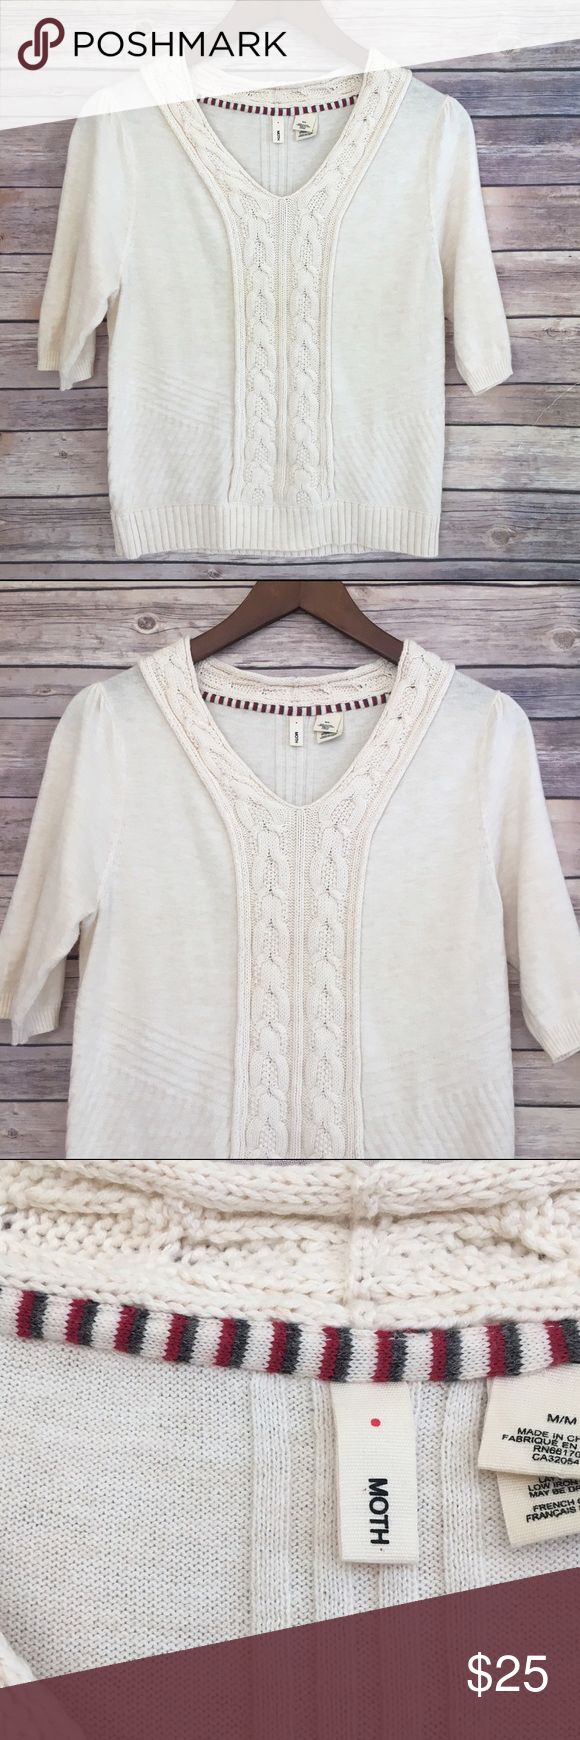 Ideal Moth by Anthropologie Short Sleeve Cream Sweater